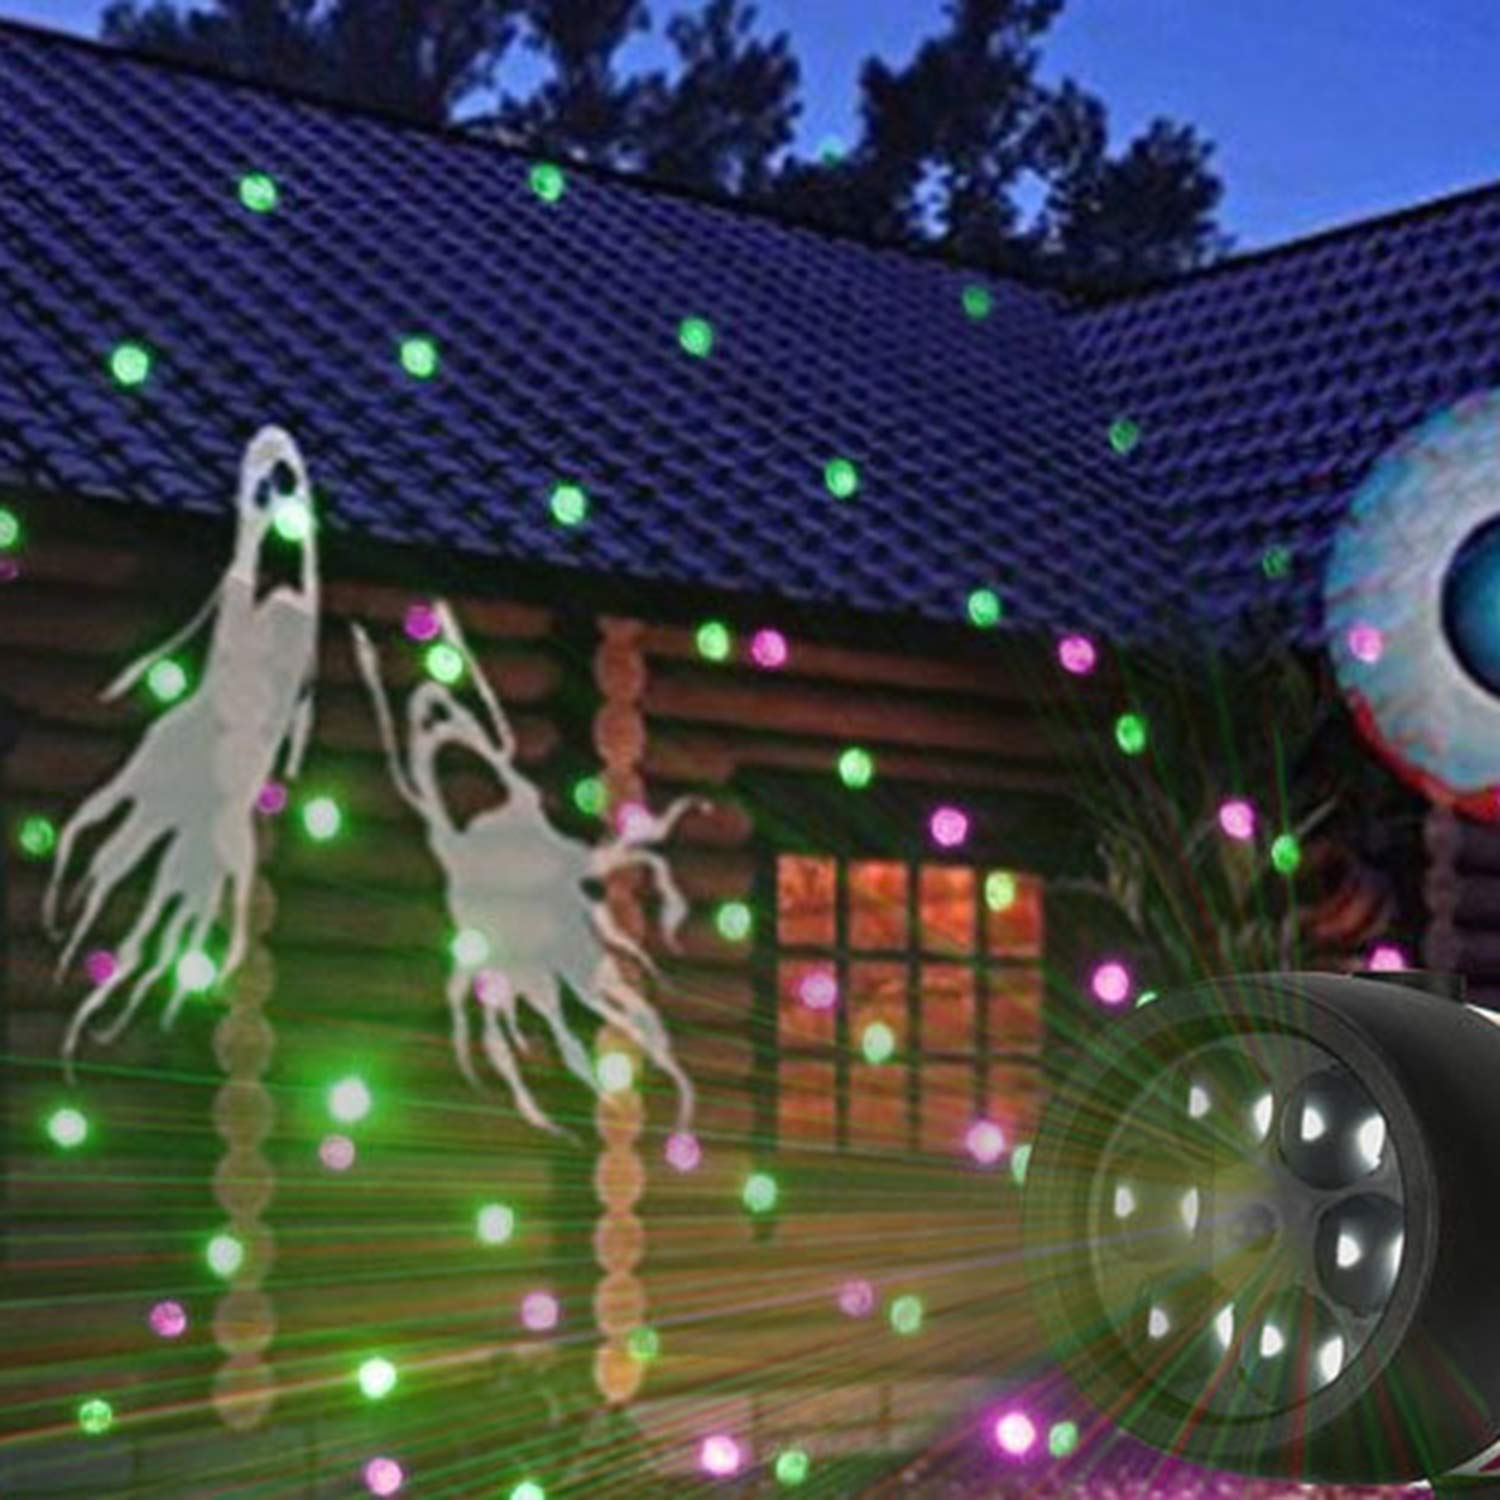 Outdoor Waterproof Snow Light, LED Christmas Projection Lamp, Film Film Card 12 Pattern Projection Lawn Lamp